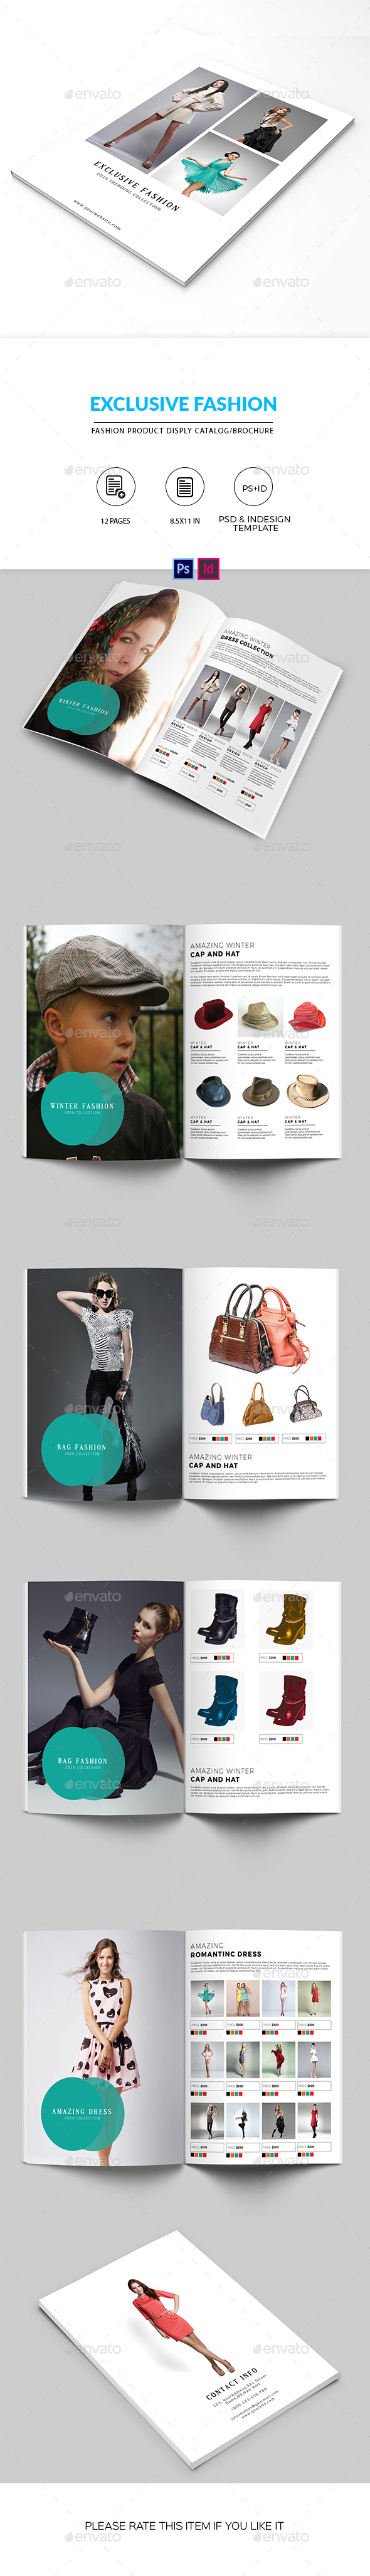 Minimal Fashion Product Display Brochure/Catalog - Catalogs Brochures